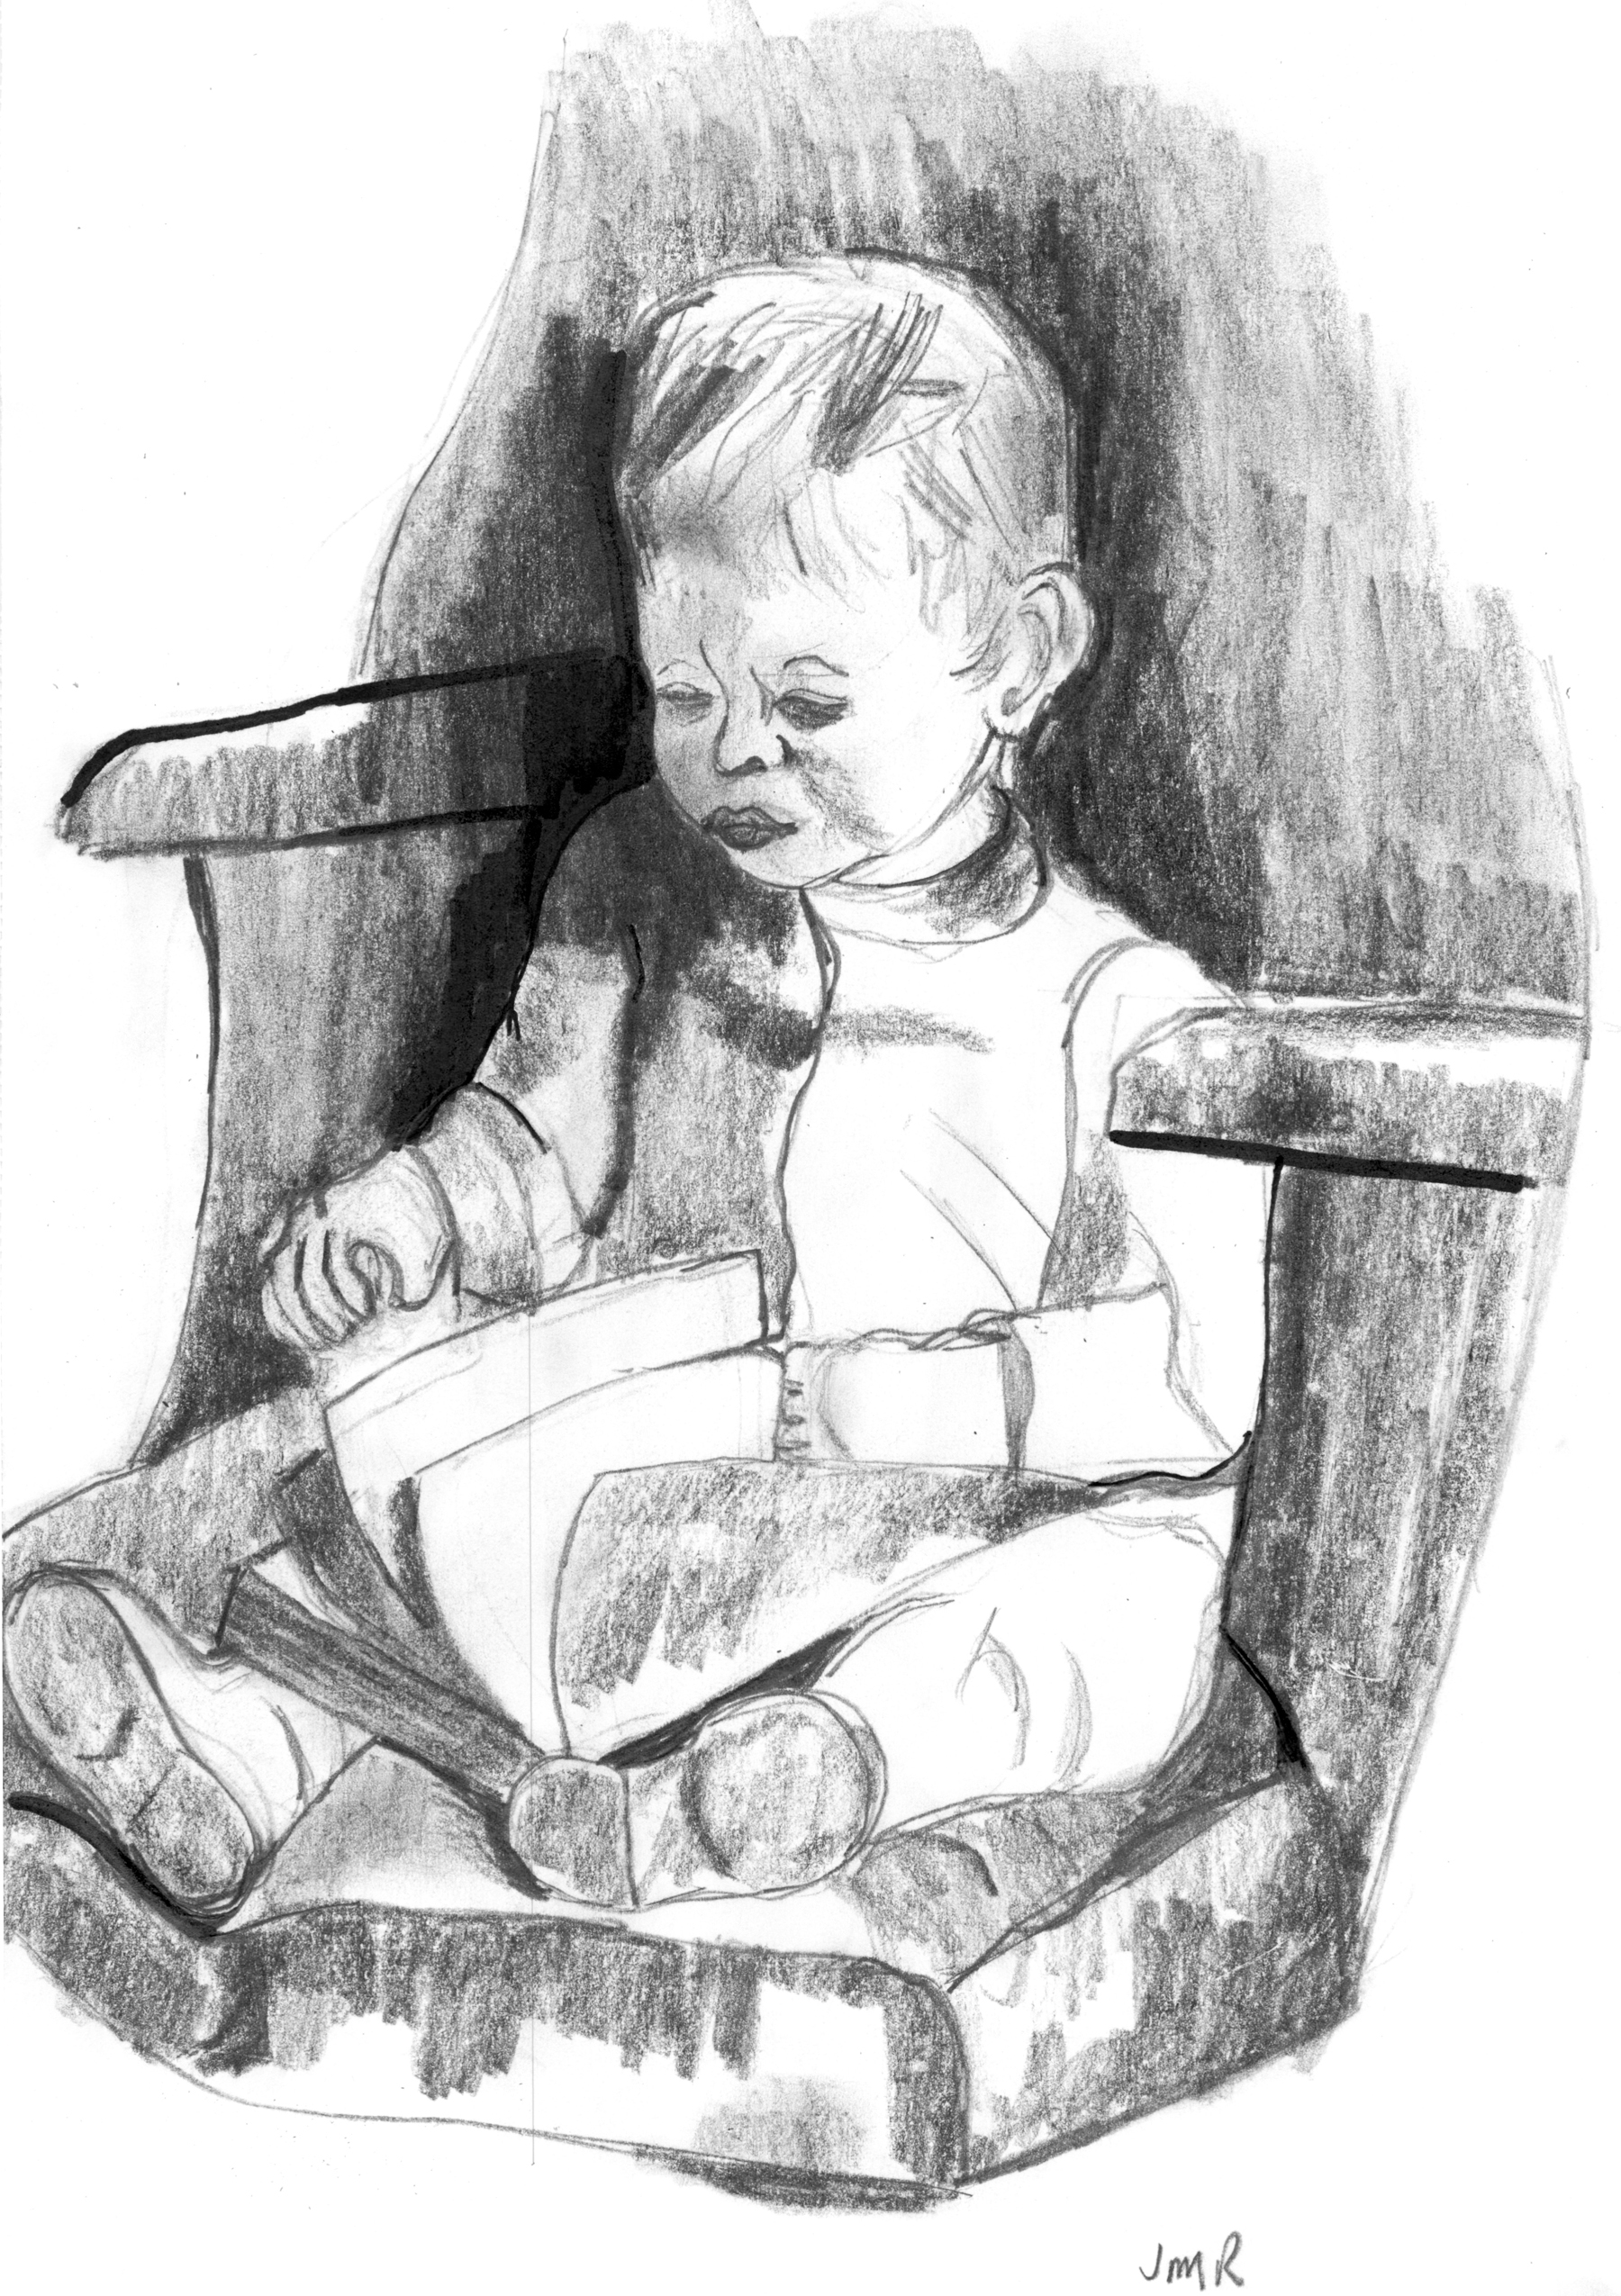 1st graphic for article #3, child reading.jpg